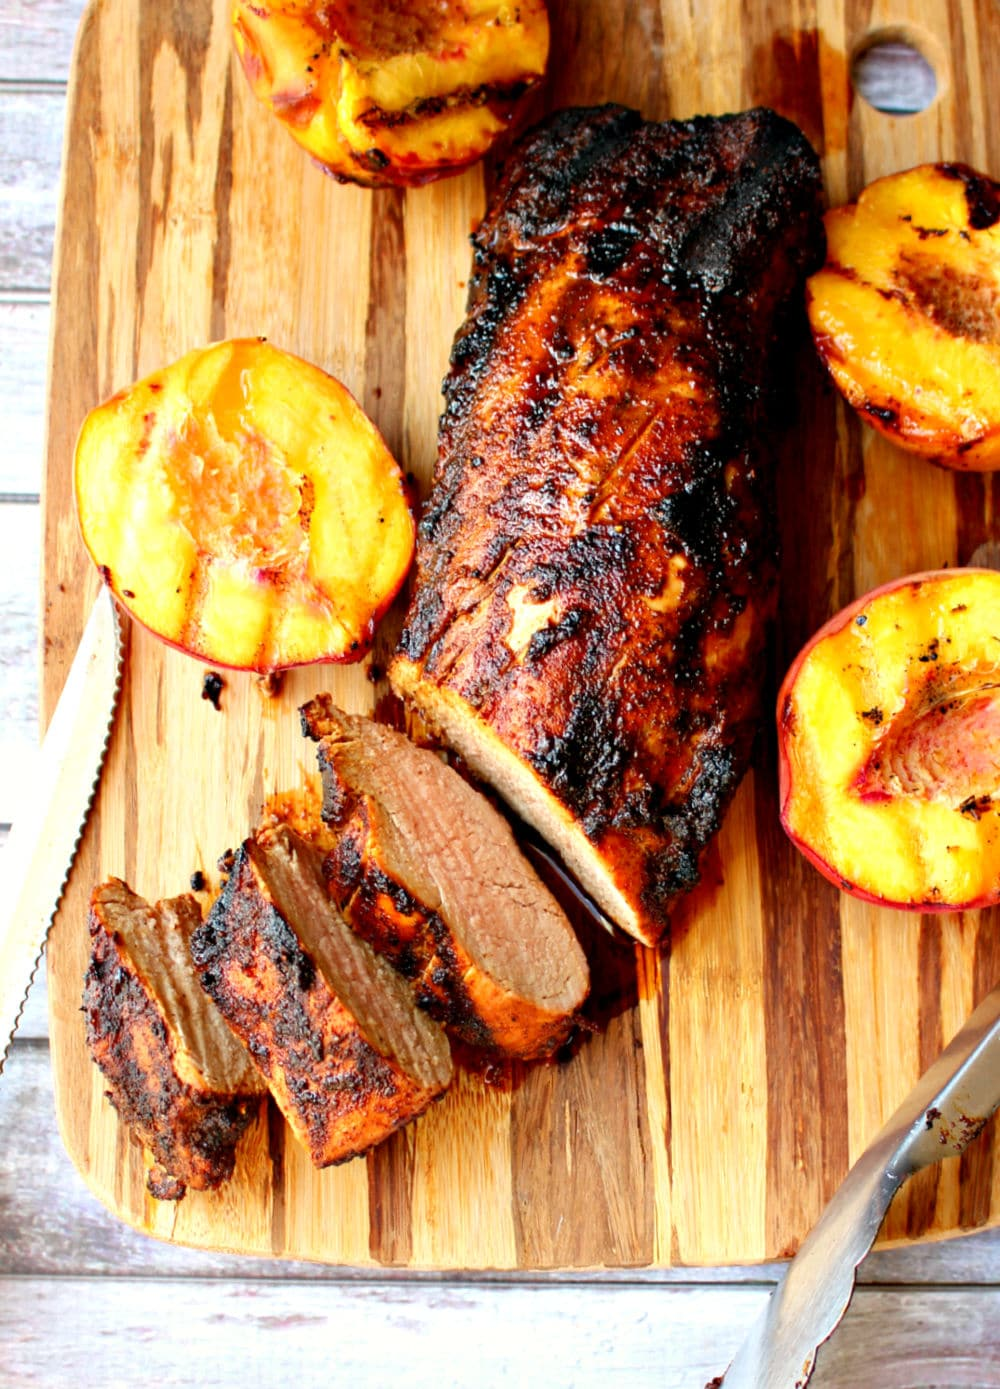 Grilled pork loin recipe, sliced on board with grilled peaches.